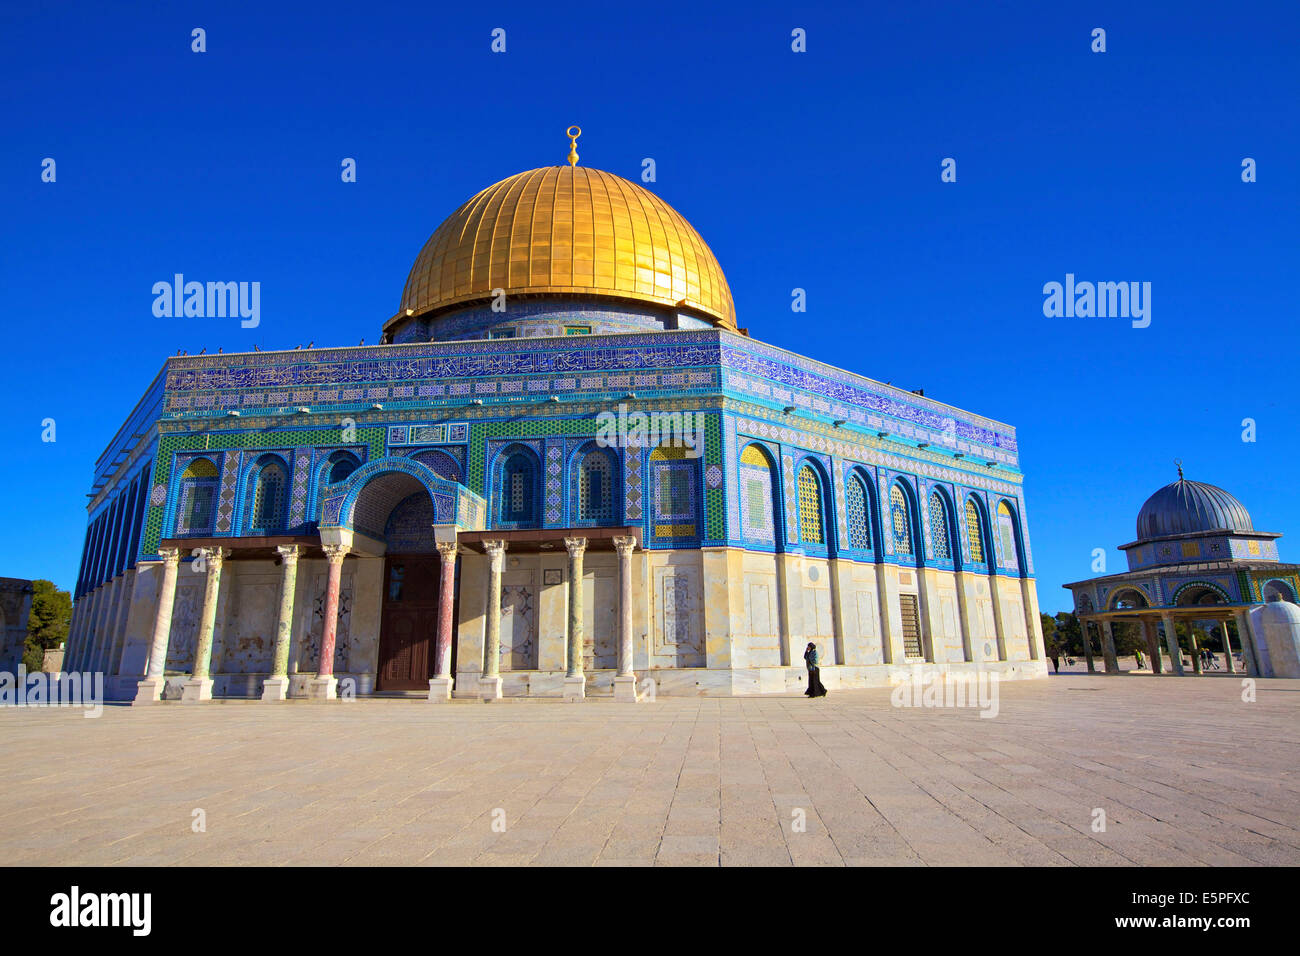 The Dome of the Rock, Temple Mount, UNESCO World Heritage Site, Jerusalem, Israel, Middle East - Stock Image